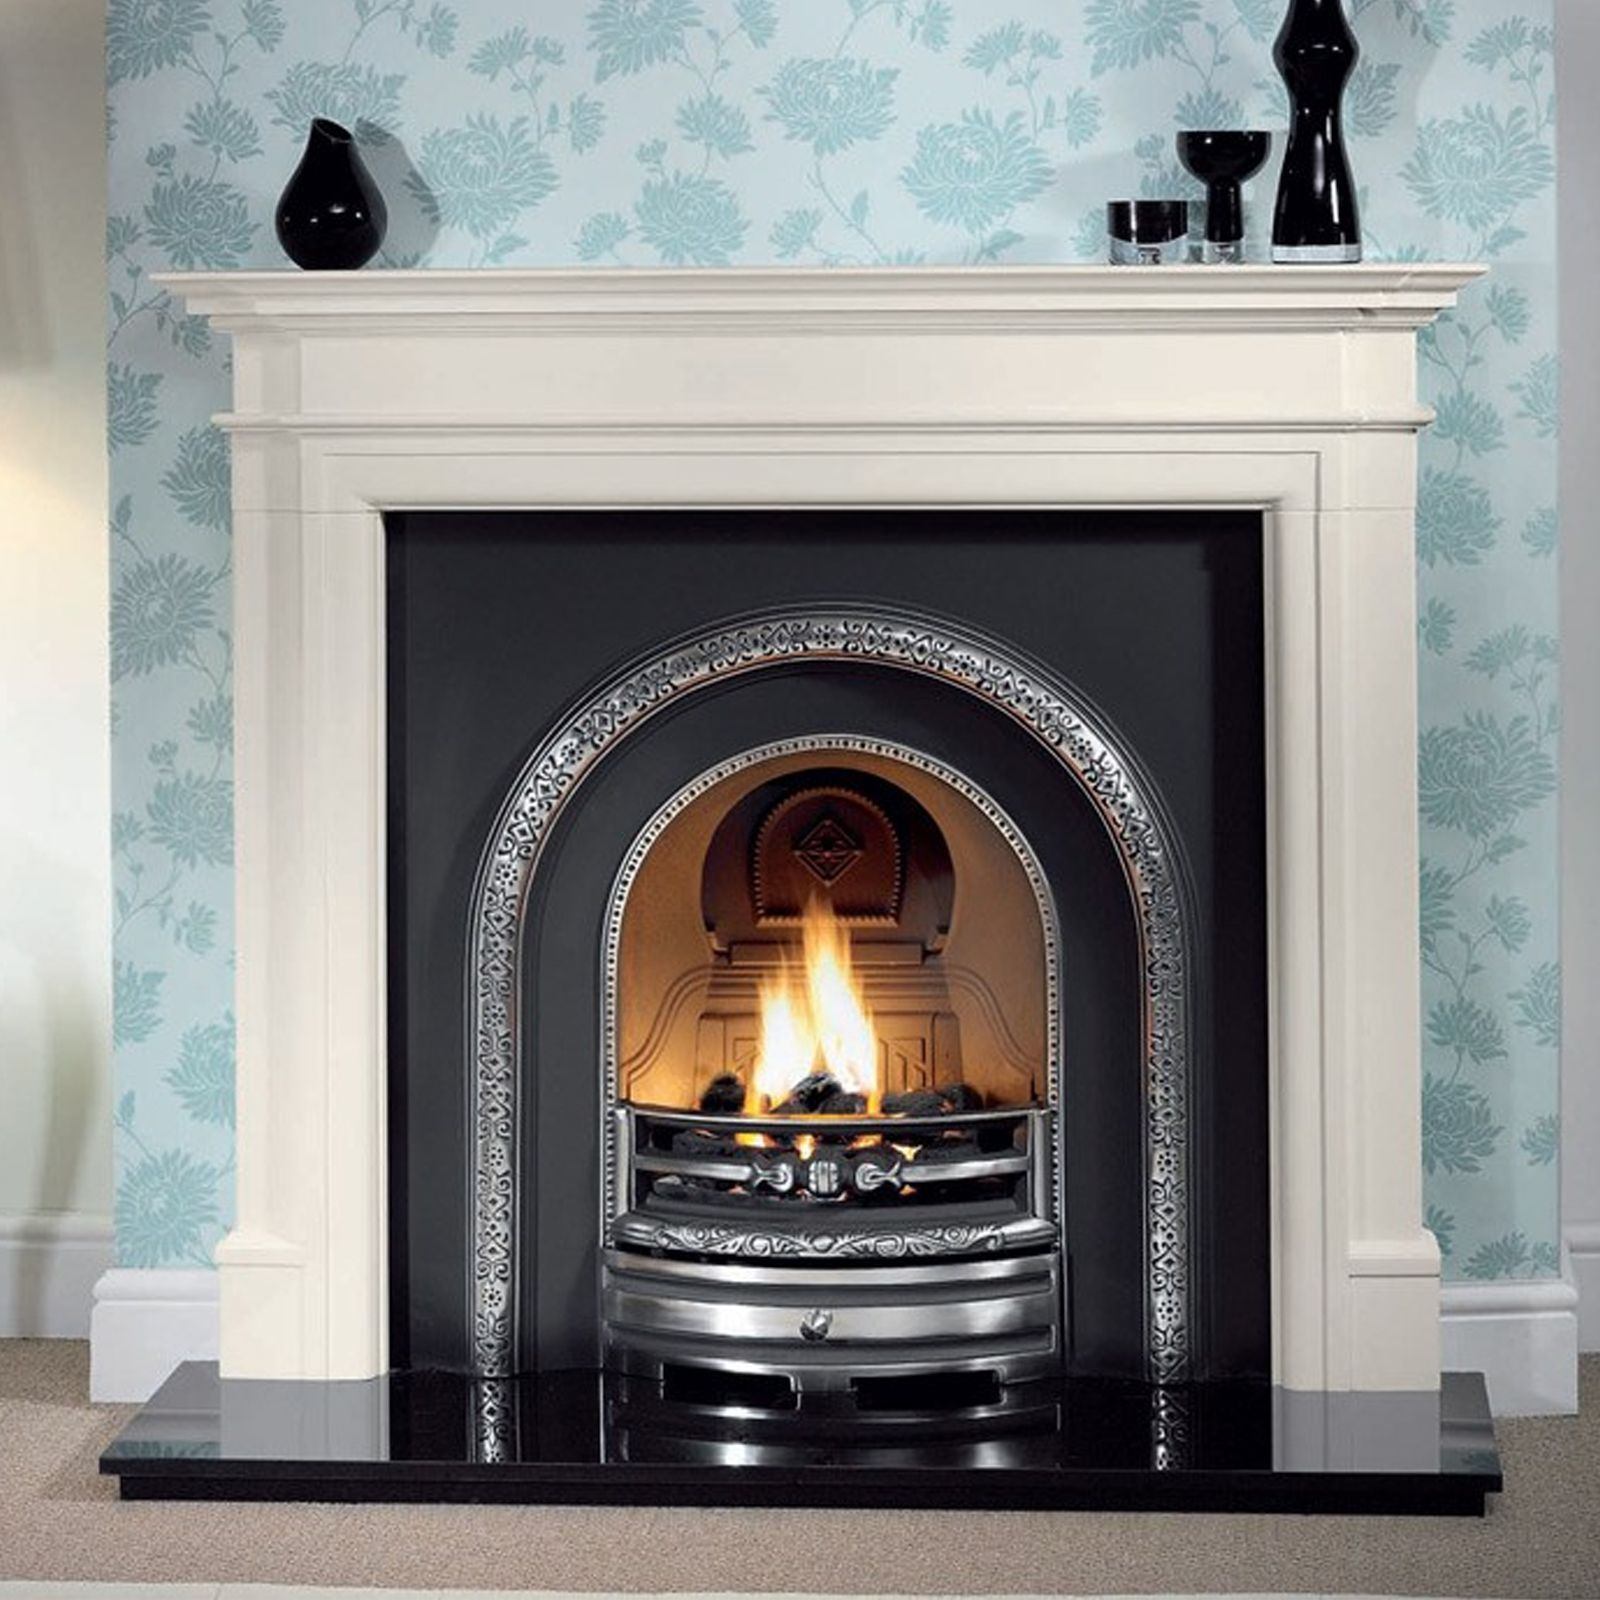 glasgow fireplaces u0026 stoves showroom wm boyle